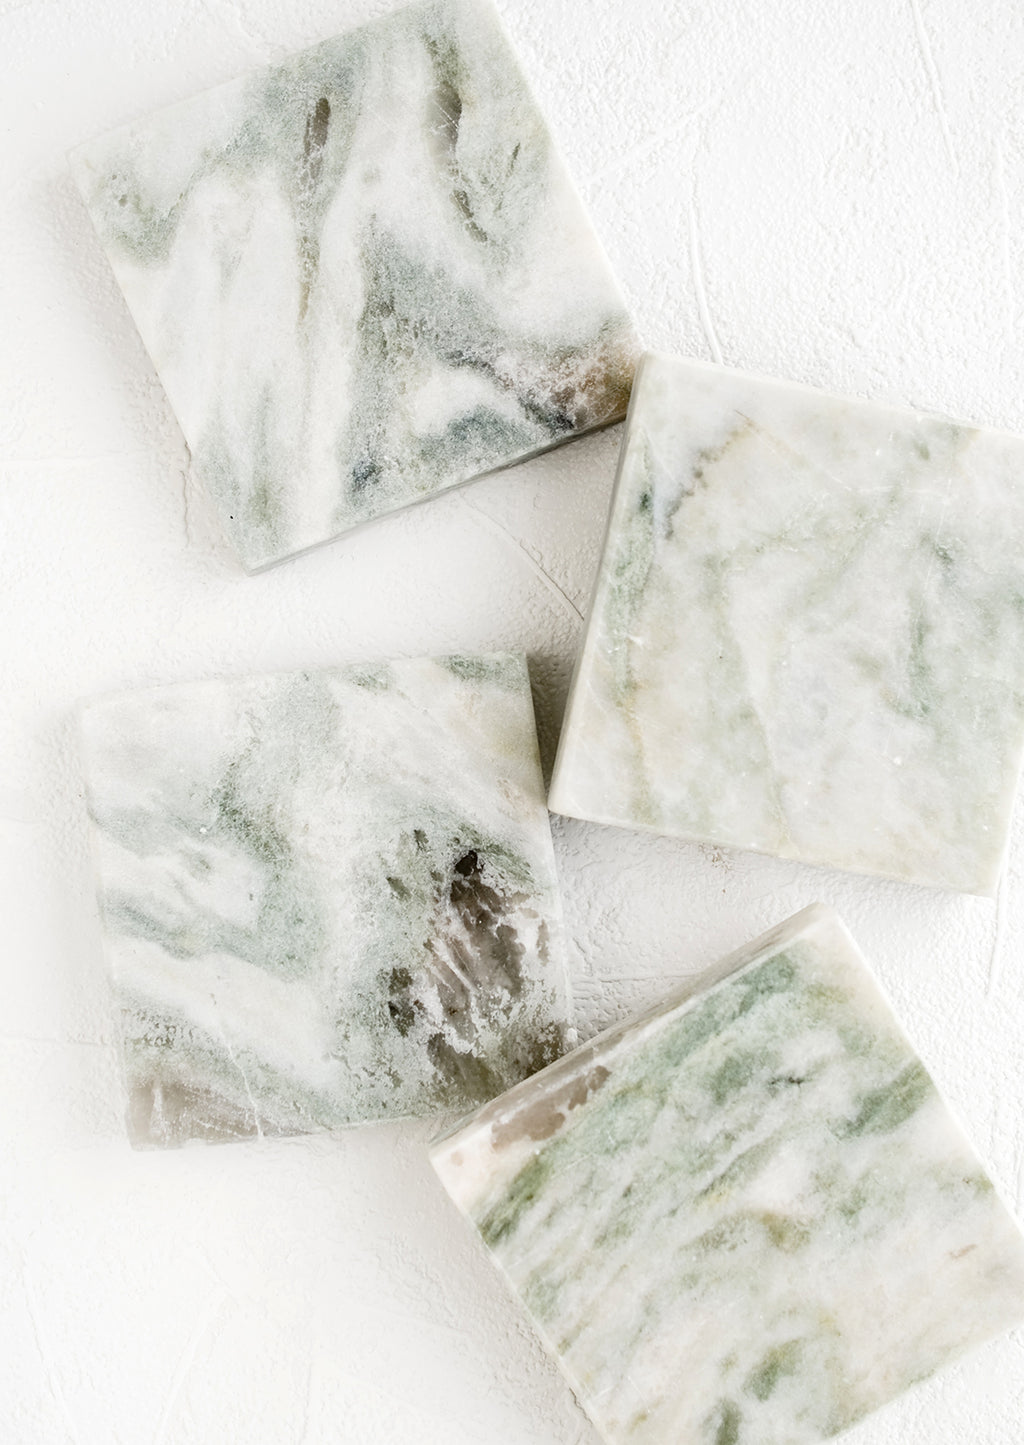 1: Four square marble coasters with variegated tones of green, white and grey.